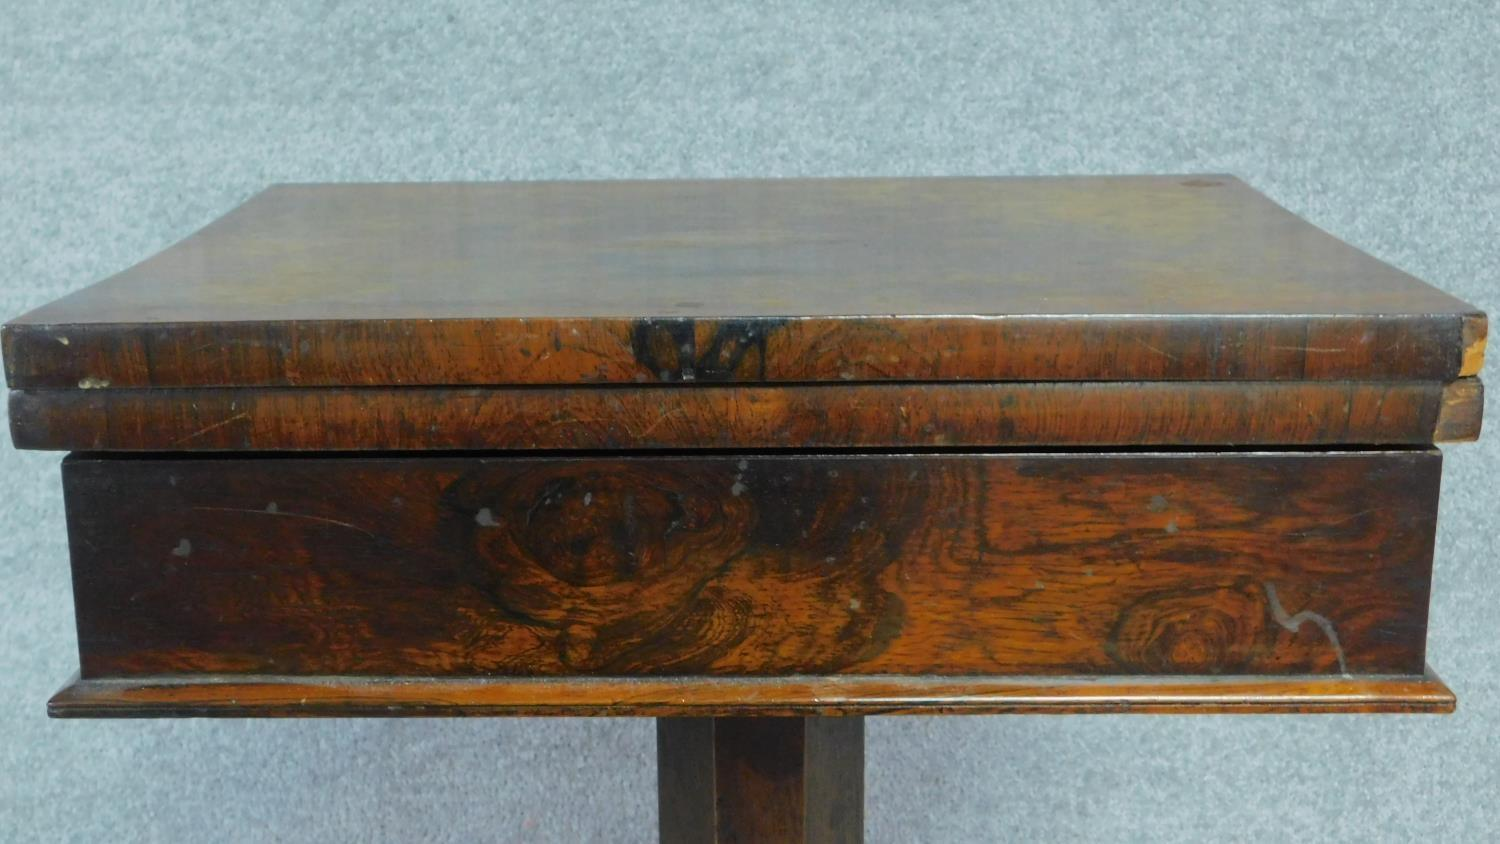 A William IV mahogany work table with fold over top enclosing interior compartment. H.73 W.71 D.46 - Image 2 of 4